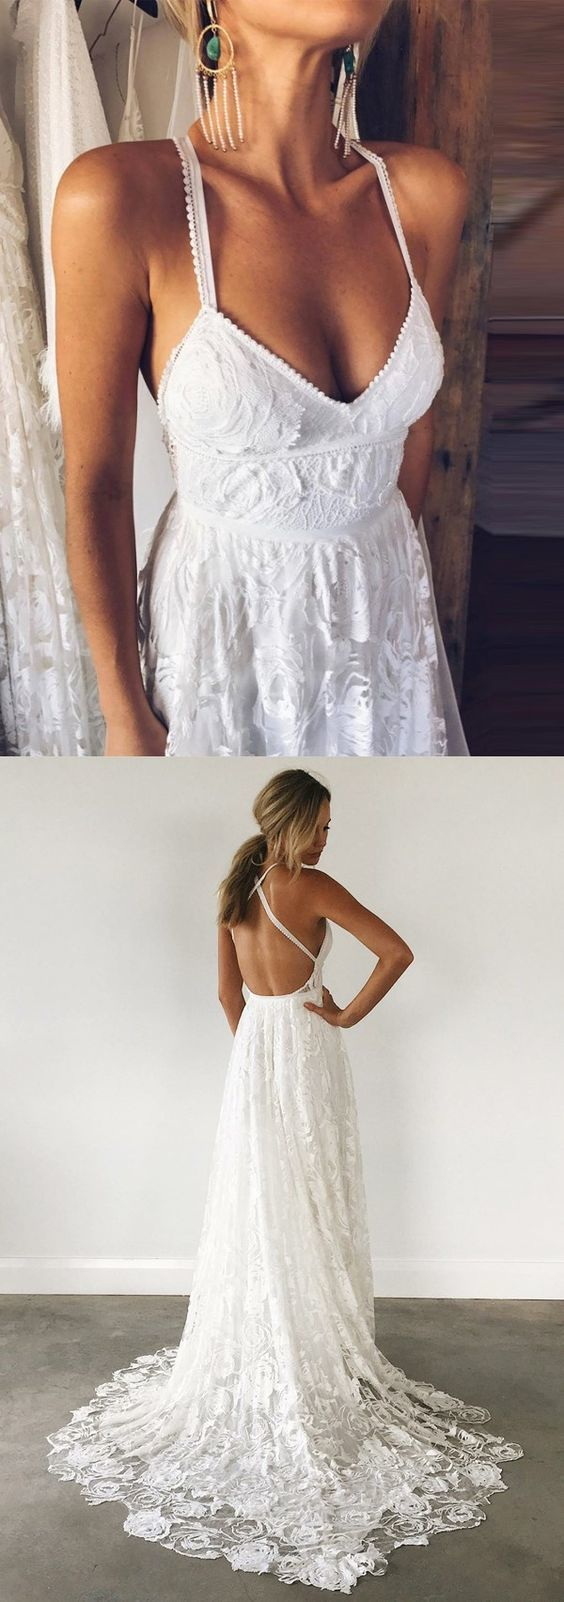 dreamy backless wedding dresses with by Miss Zhu Bridal on Zibbet